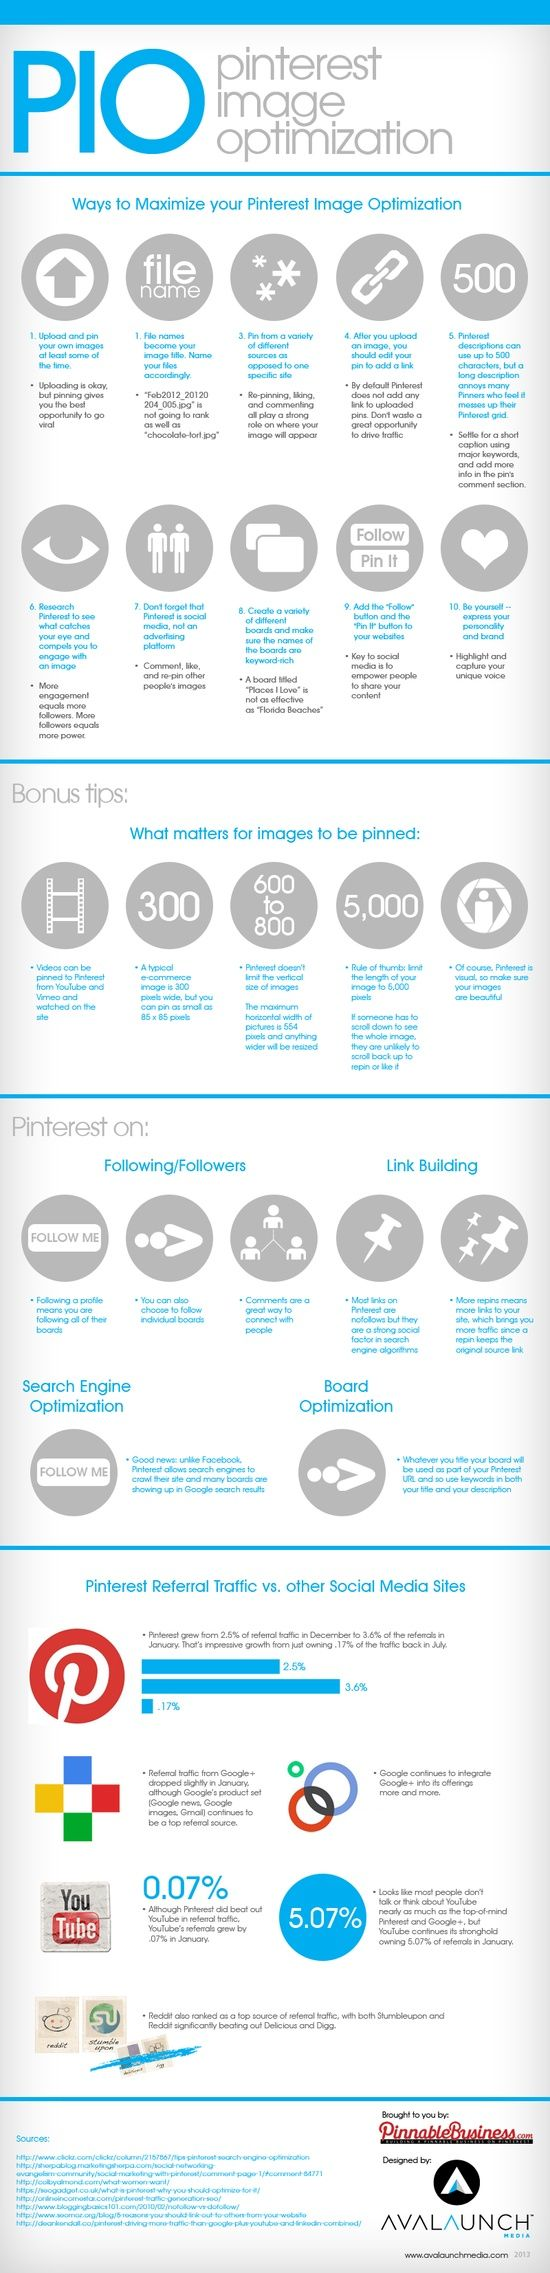 Pinterest Image Optimization Infographic from Avalaunch Media...